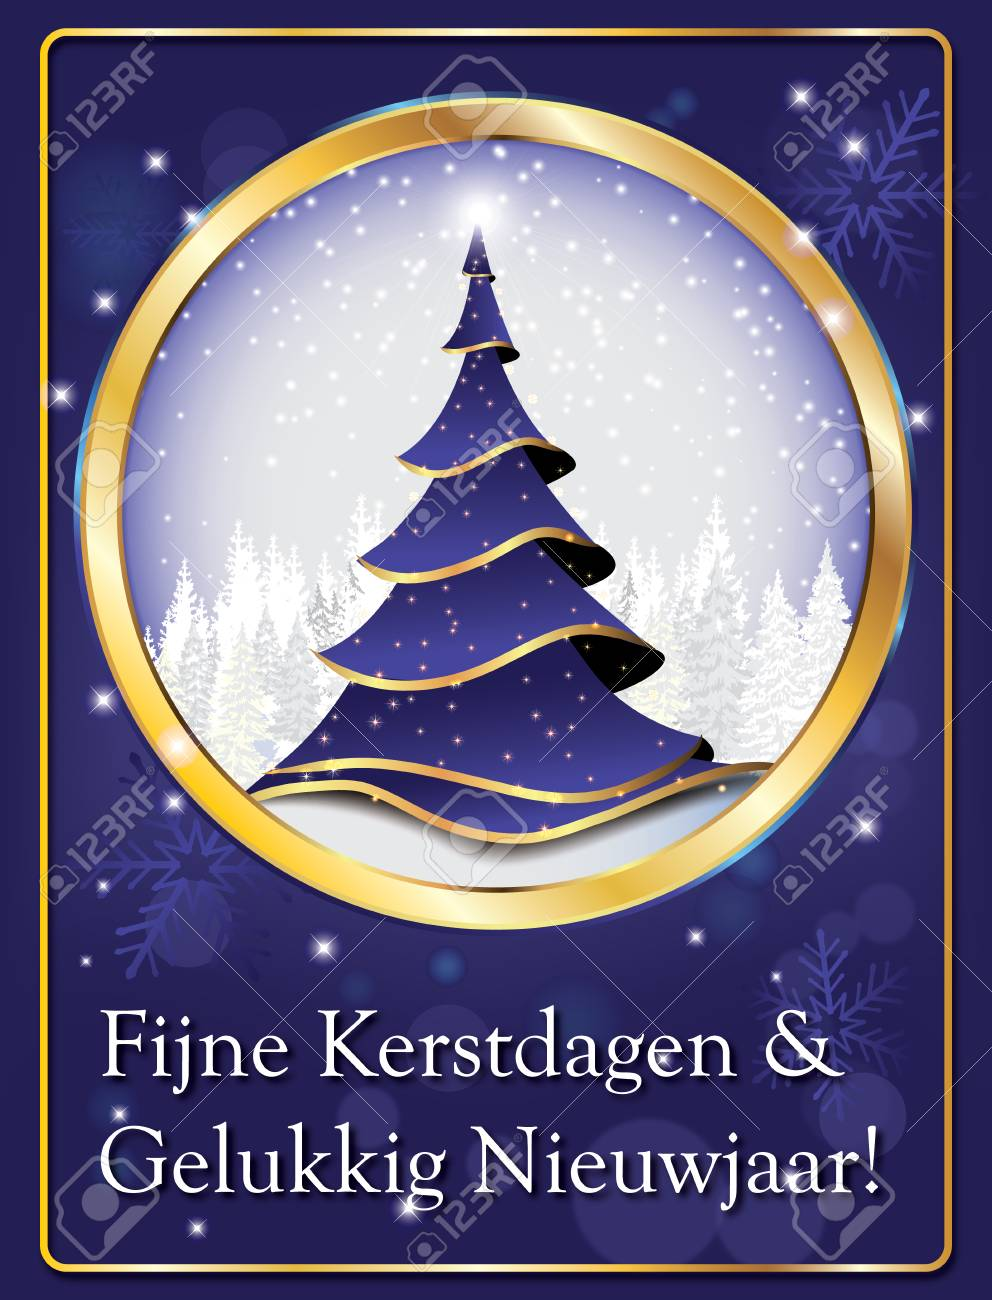 dutch elegant greeting card for winter season merry christmas and happy new year fijne